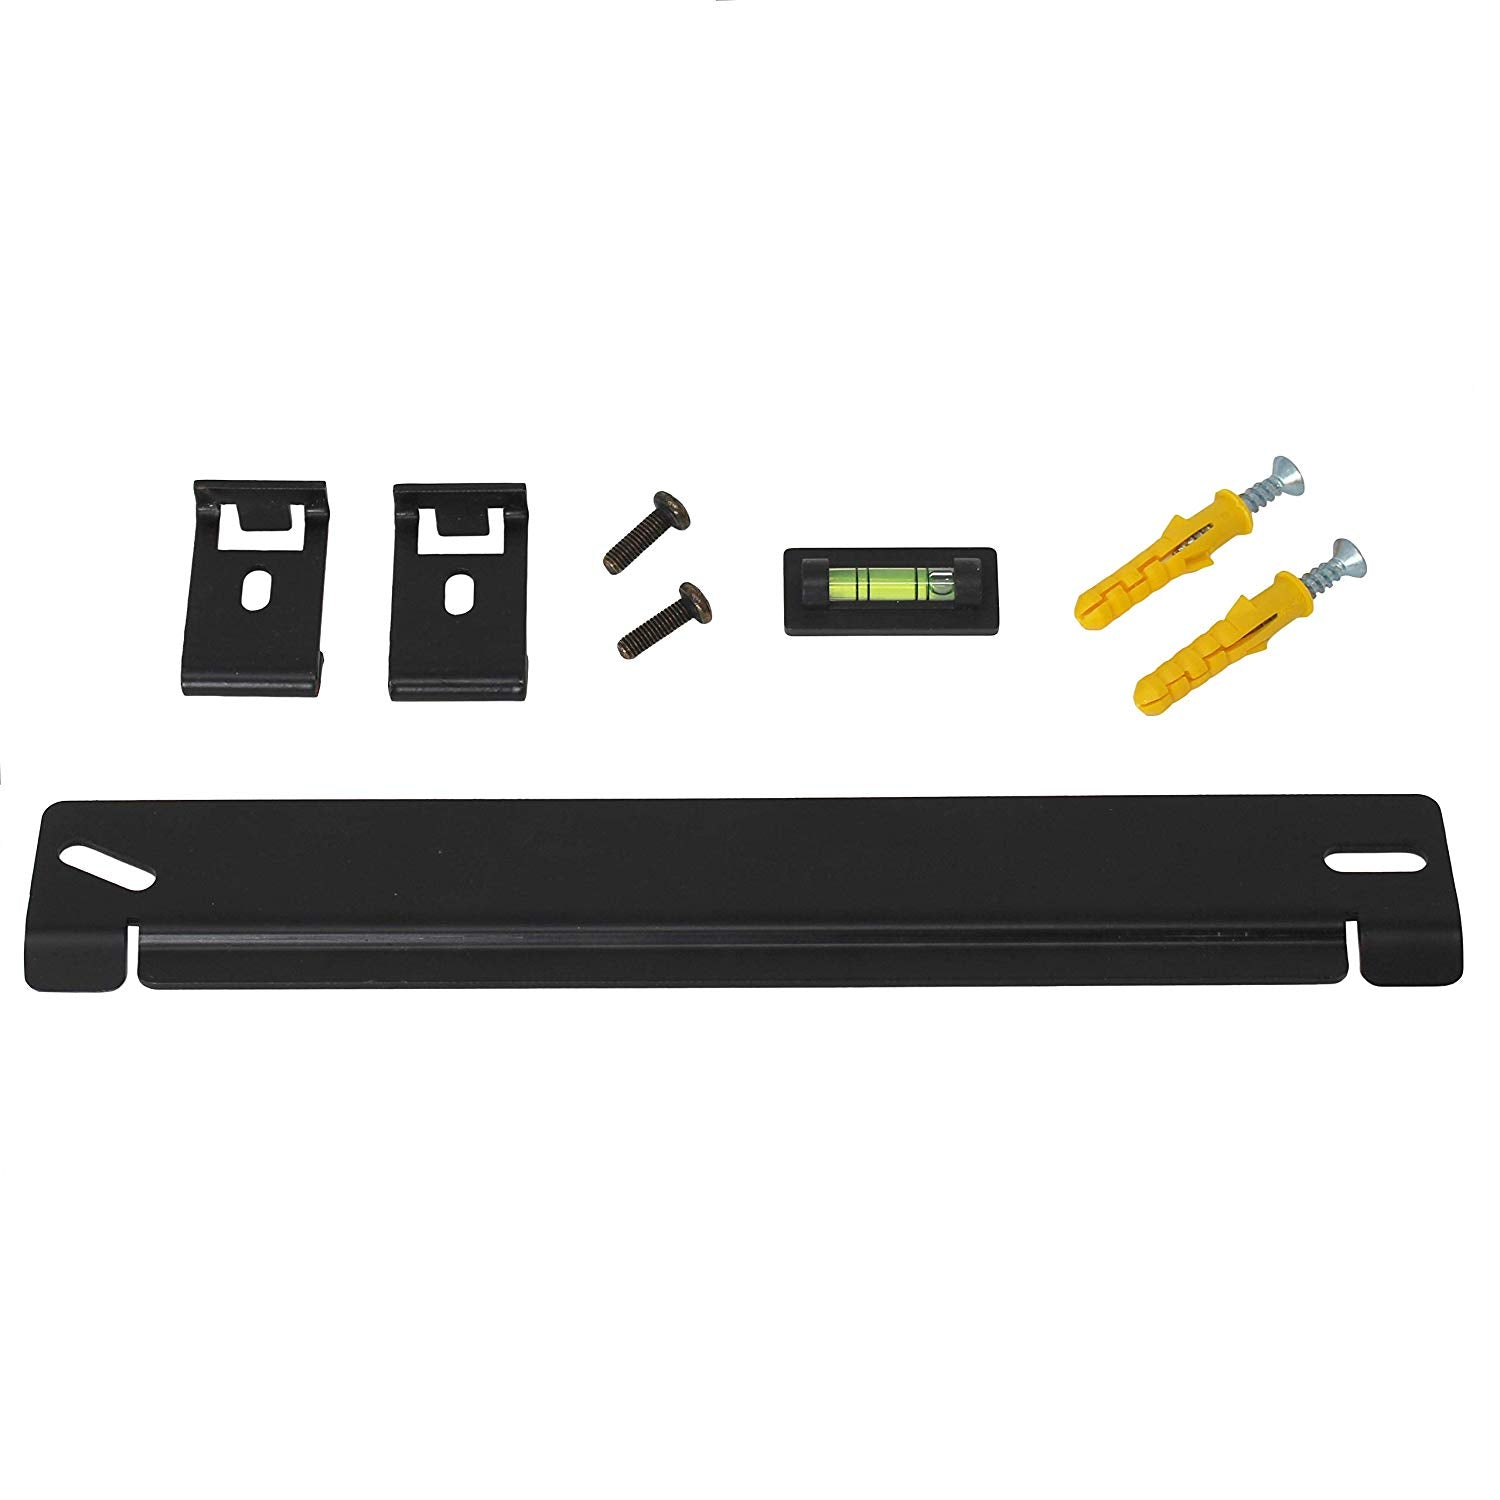 Adjustable Solo 5 Mounting Kit for Bose Solo 5 Soundbar